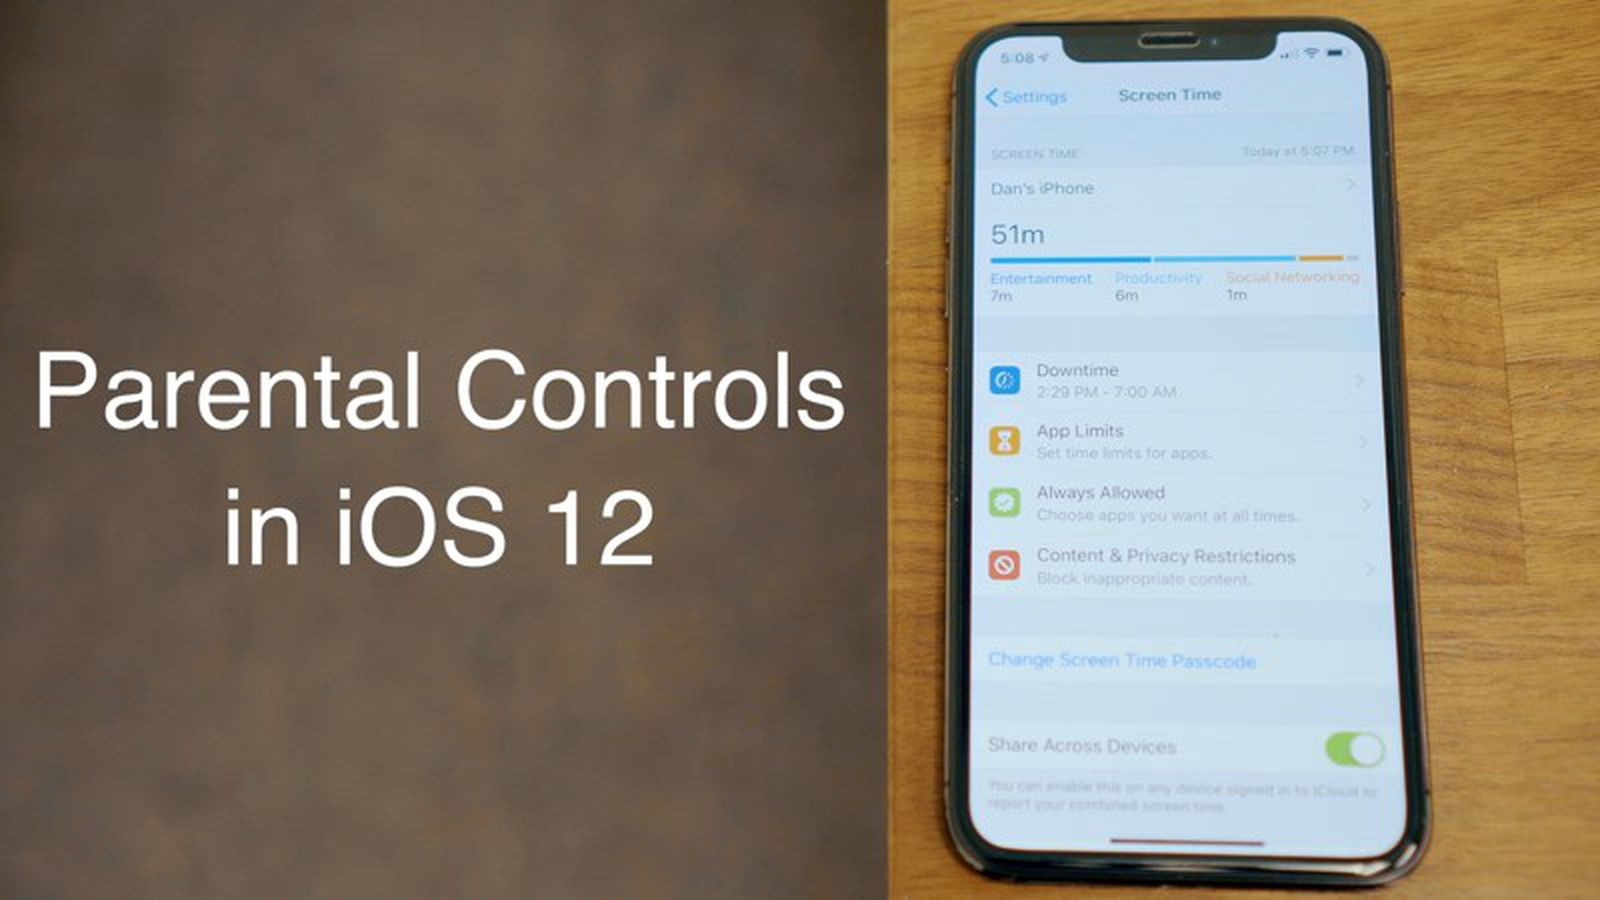 How To Access And Set Up Parental Controls In Ios 12 Macrumors